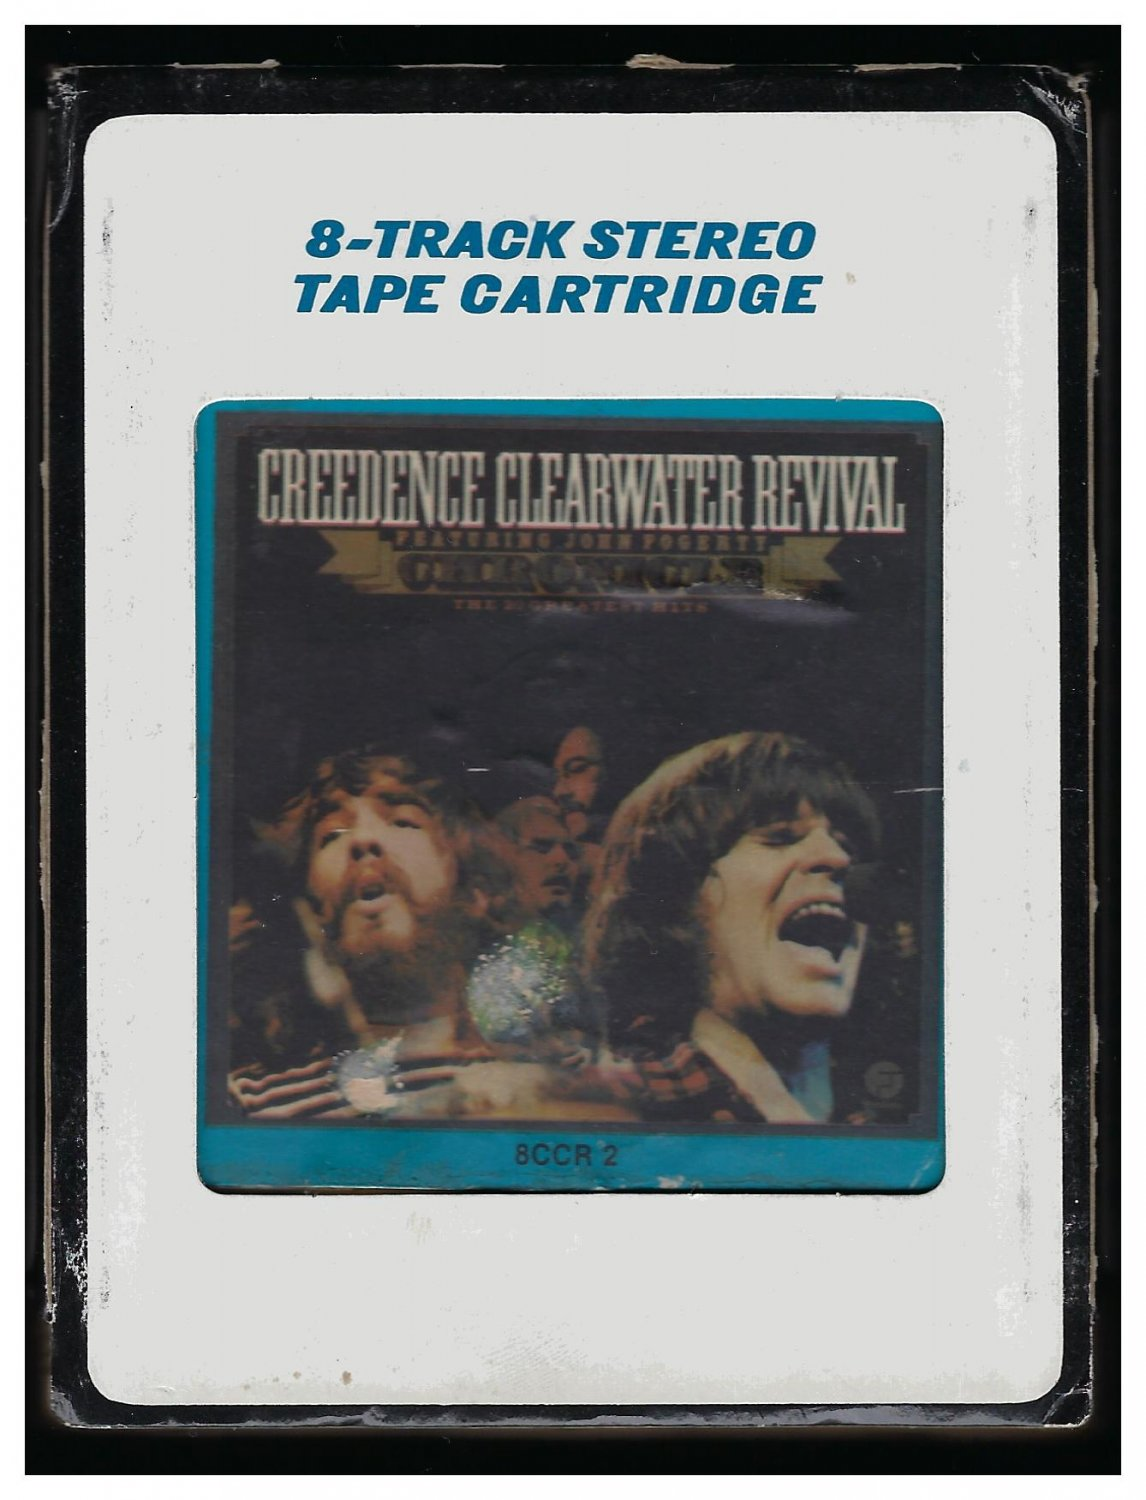 Creedence Clearwater Revival - Chronicle 1976 CRC FANTASY Re-issue T5 8-TRACK TAPE